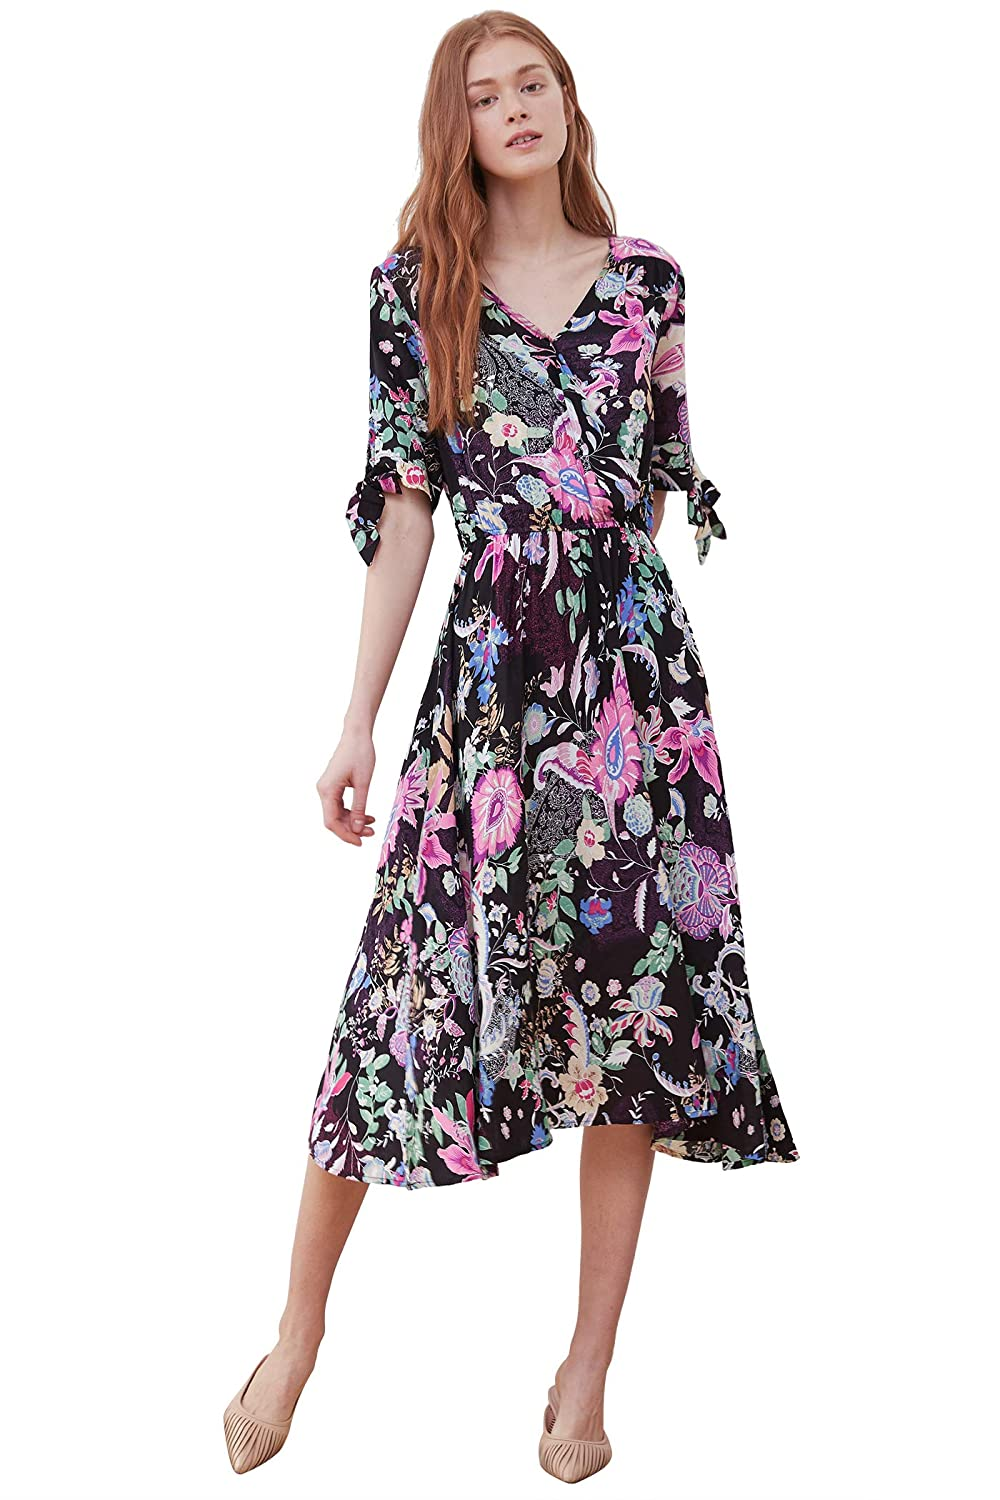 d7493413b71 Pintage Women s Summer Boho Midi Wrap Dress at Amazon Women s Clothing  store